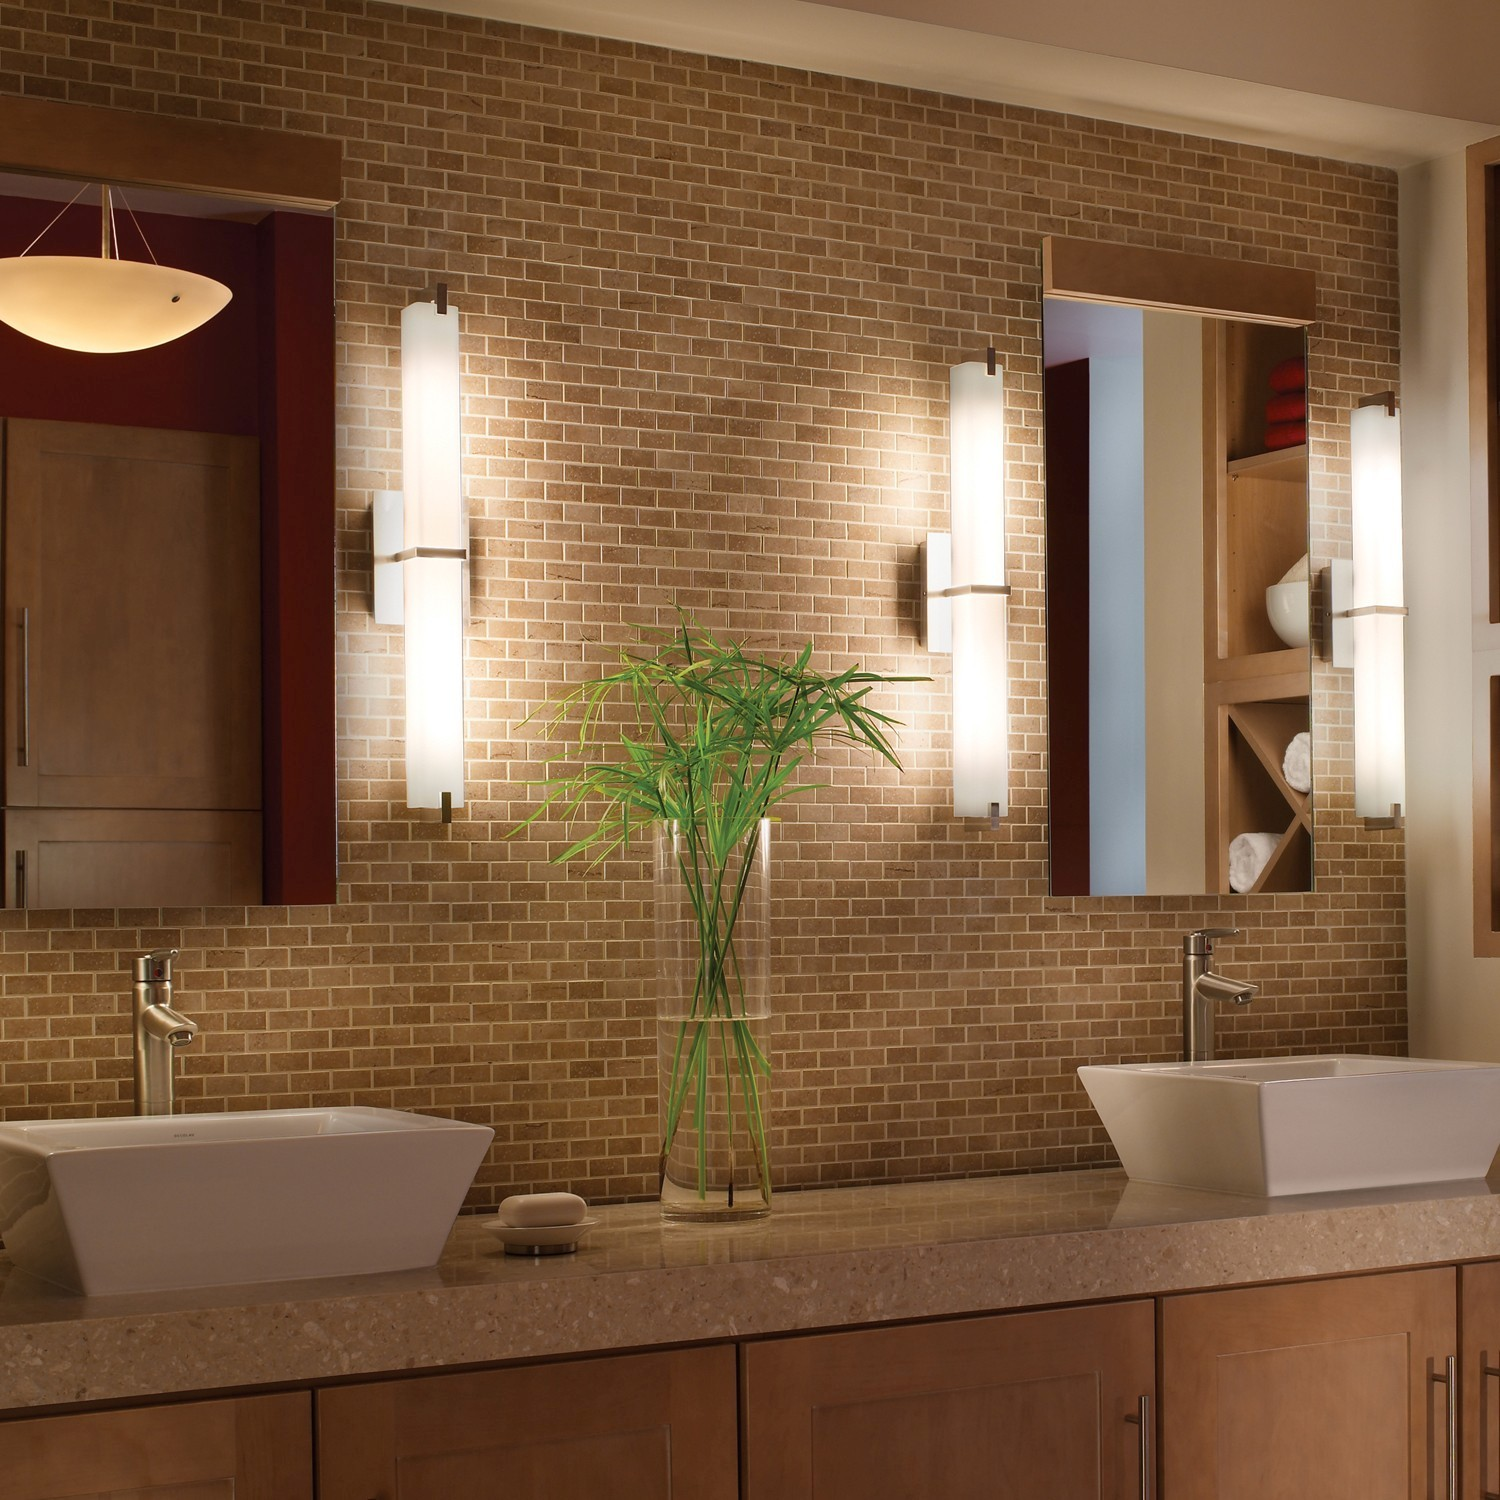 Best Lighting for Bathroom Vanity Best Of How to Light A Bathroom Lighting Ideas Tips Décor